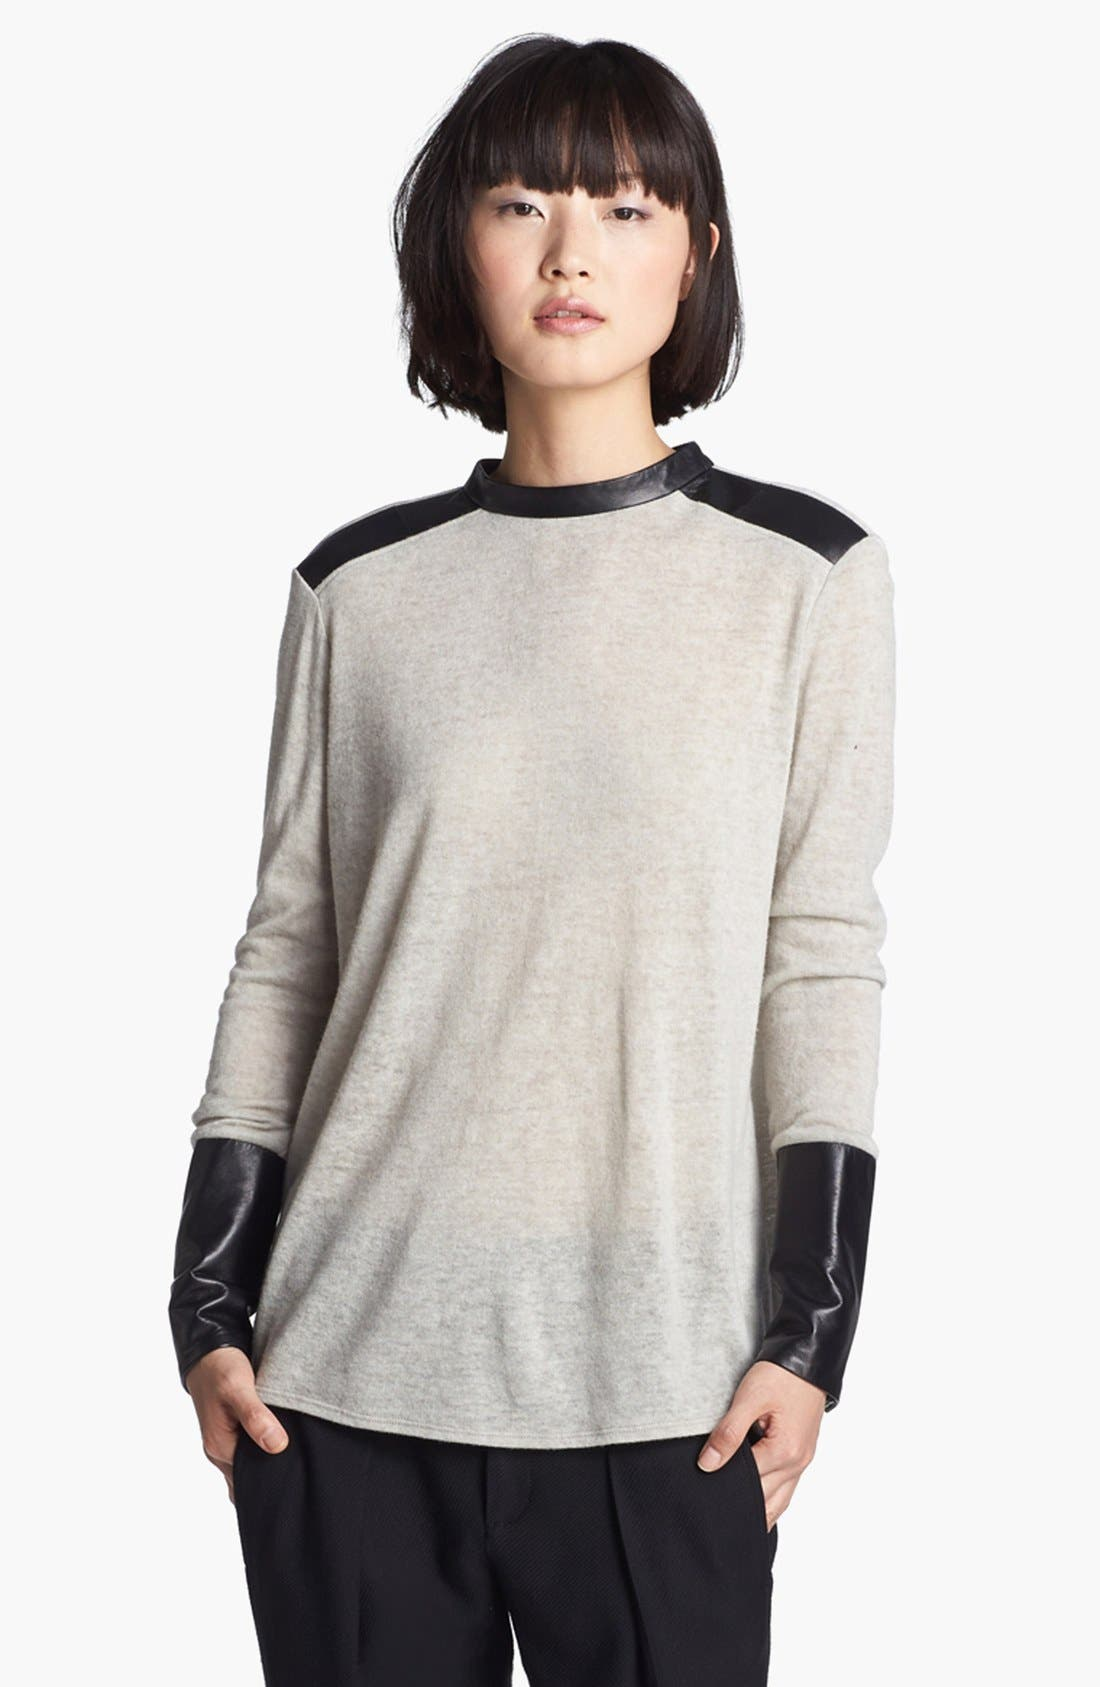 Alternate Image 1 Selected - Helmut Lang Leather Trim Knit Top